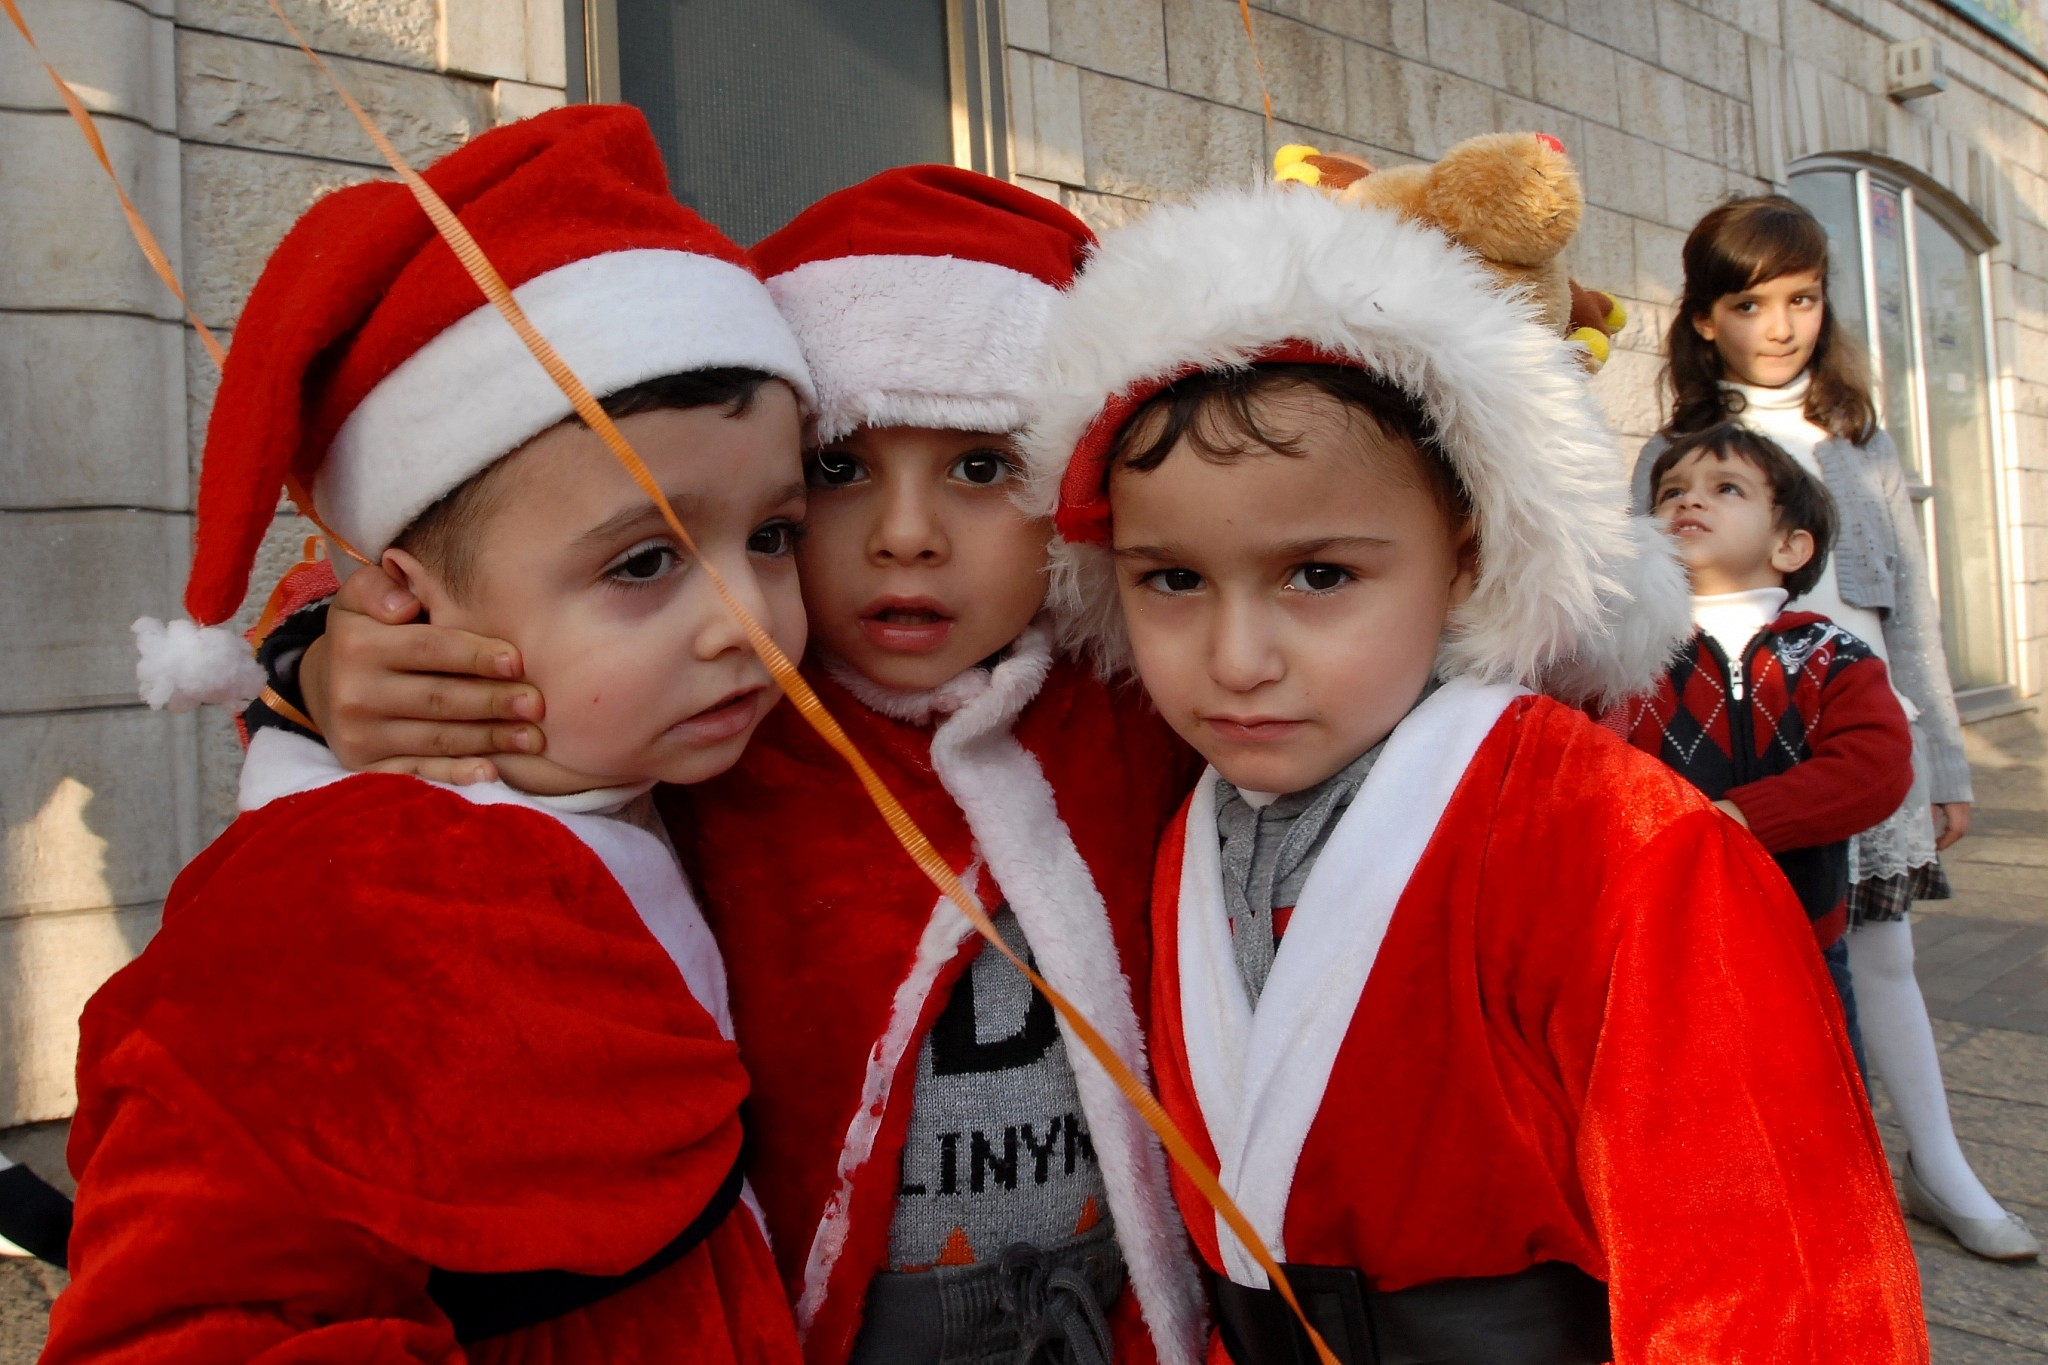 Mayor: Nazareth Christmas celebrations will be held as normal